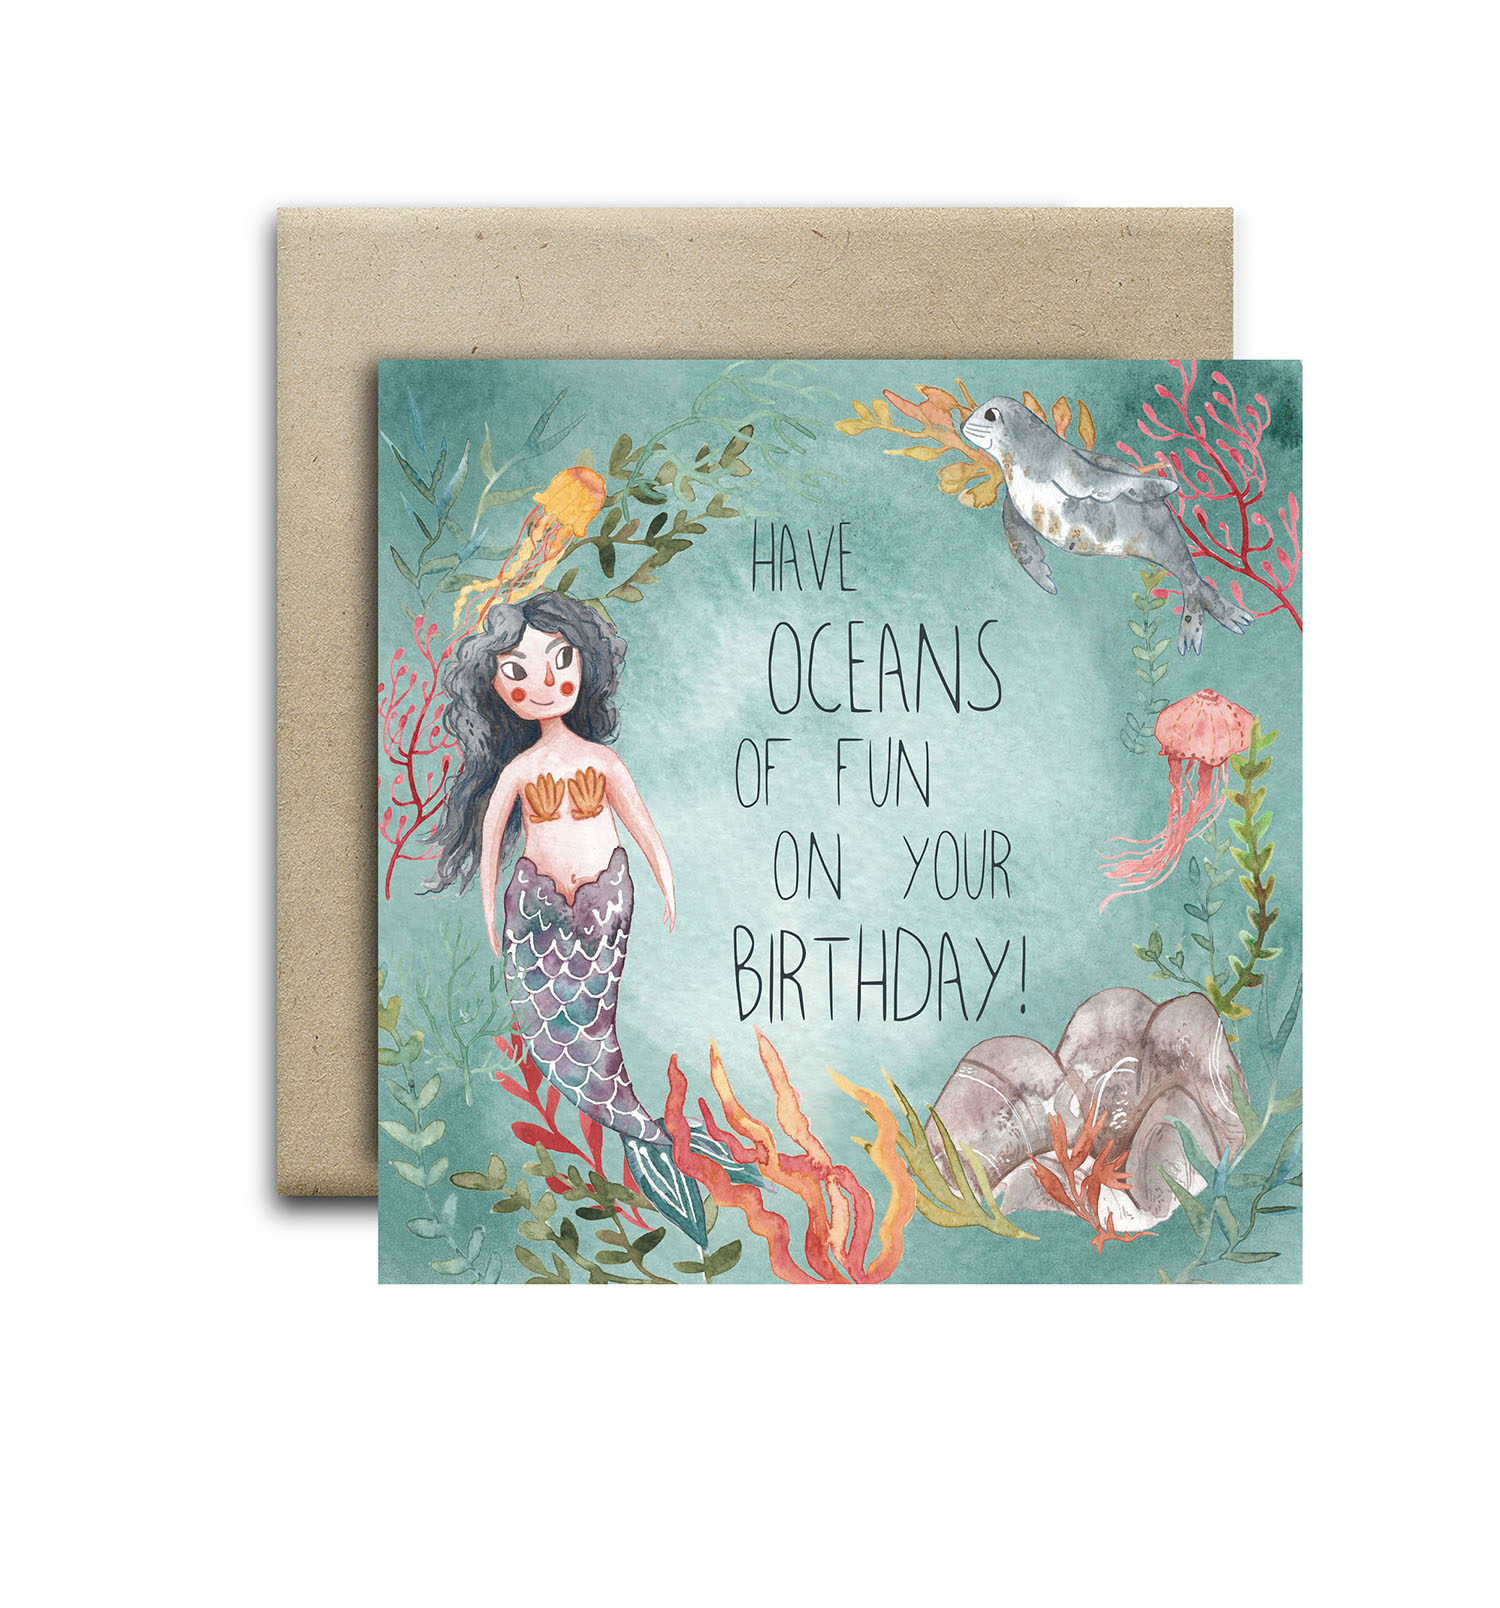 Have oceans of fun birthday card